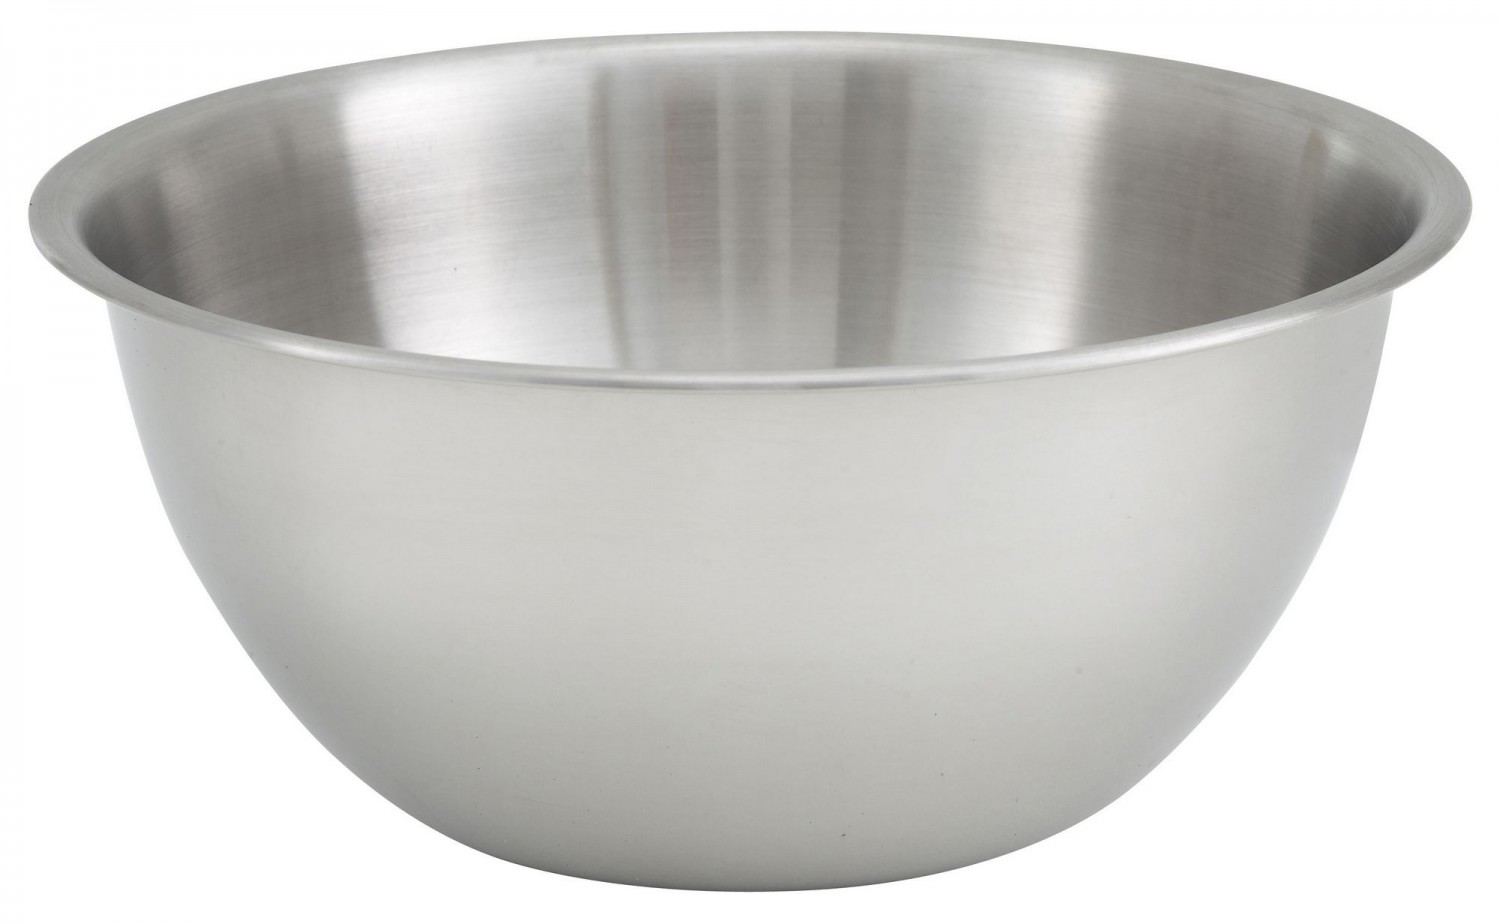 Winco MXBH-800 Stainless Steel Deep Mixing Bowl 8 Qt.